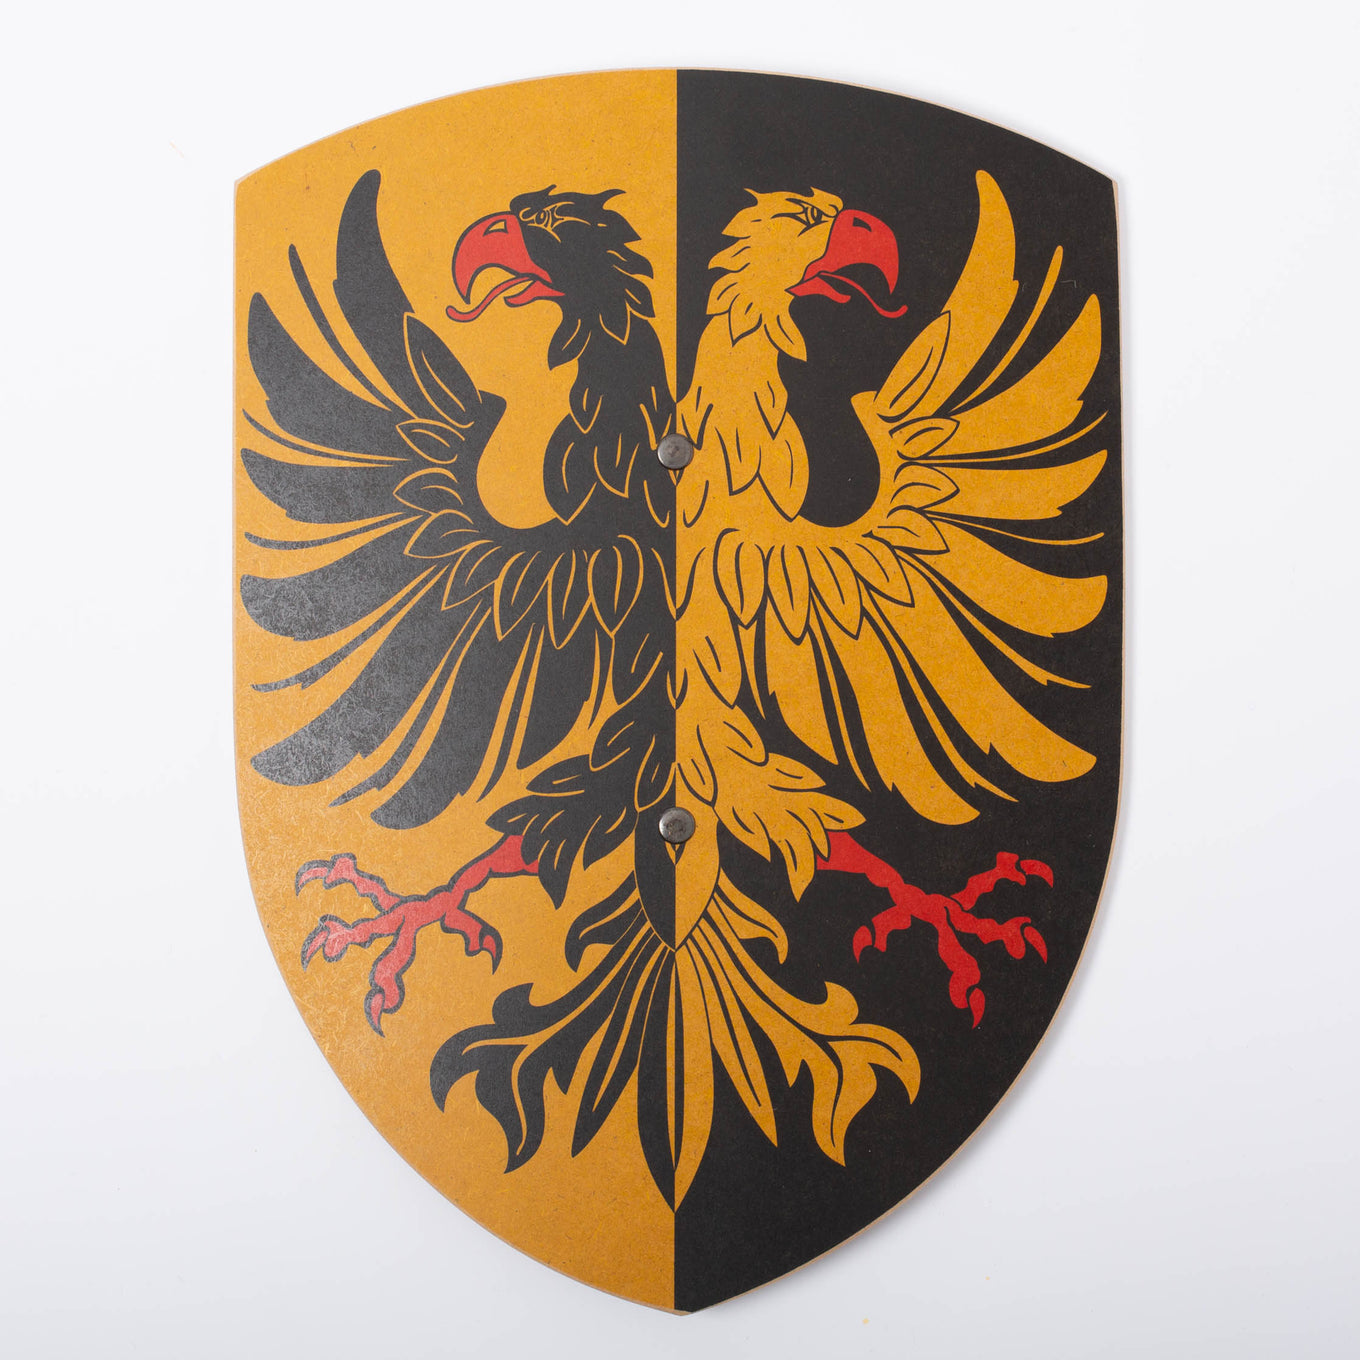 Double Headed Eagle Shield